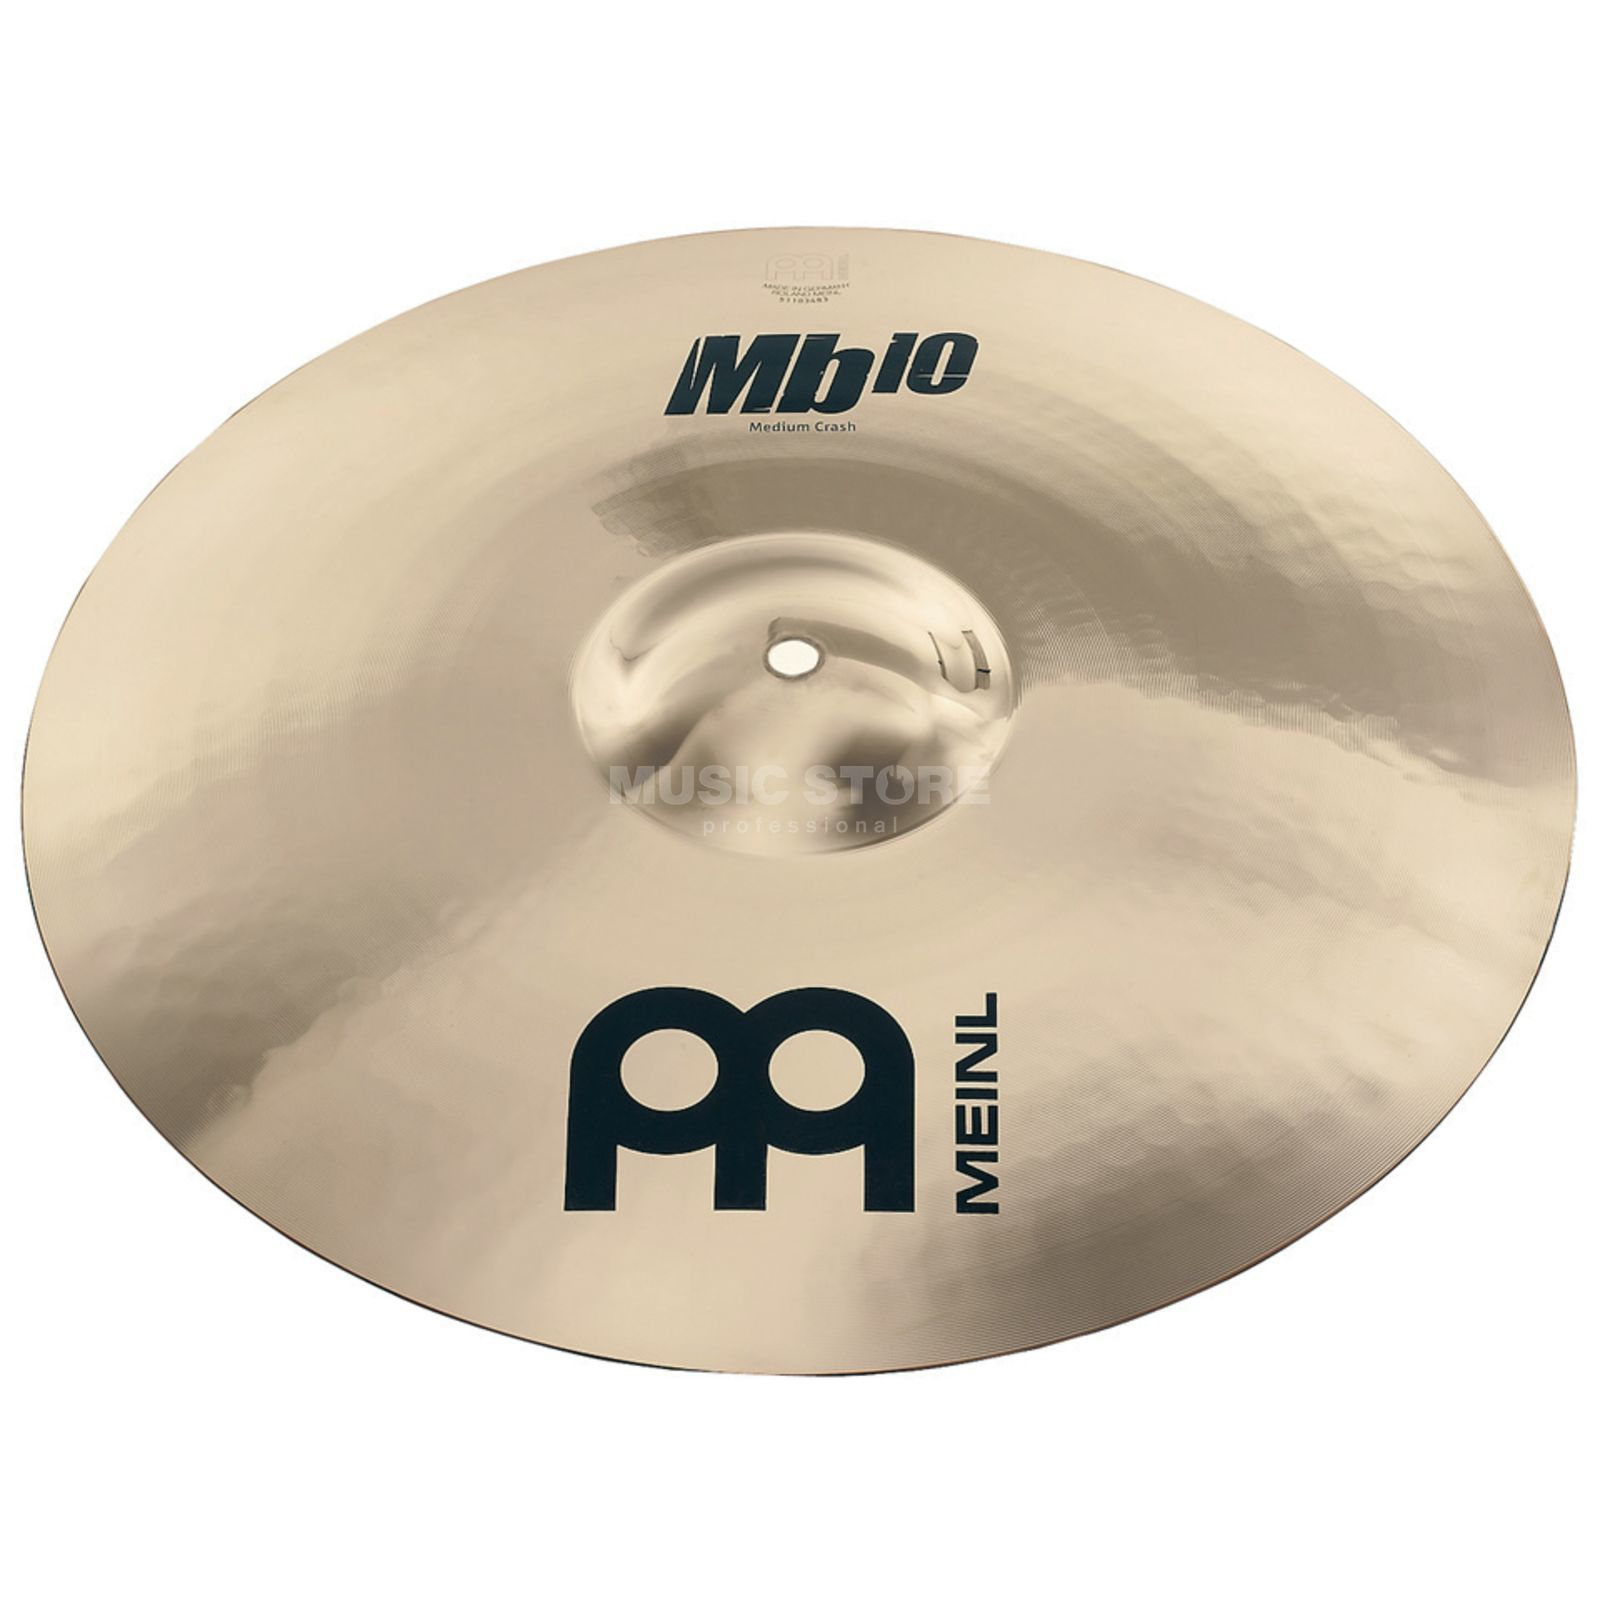 "Meinl MB10 Medium Crash 15"" MB10-15MC-B, Brilliant Finish Produktbild"